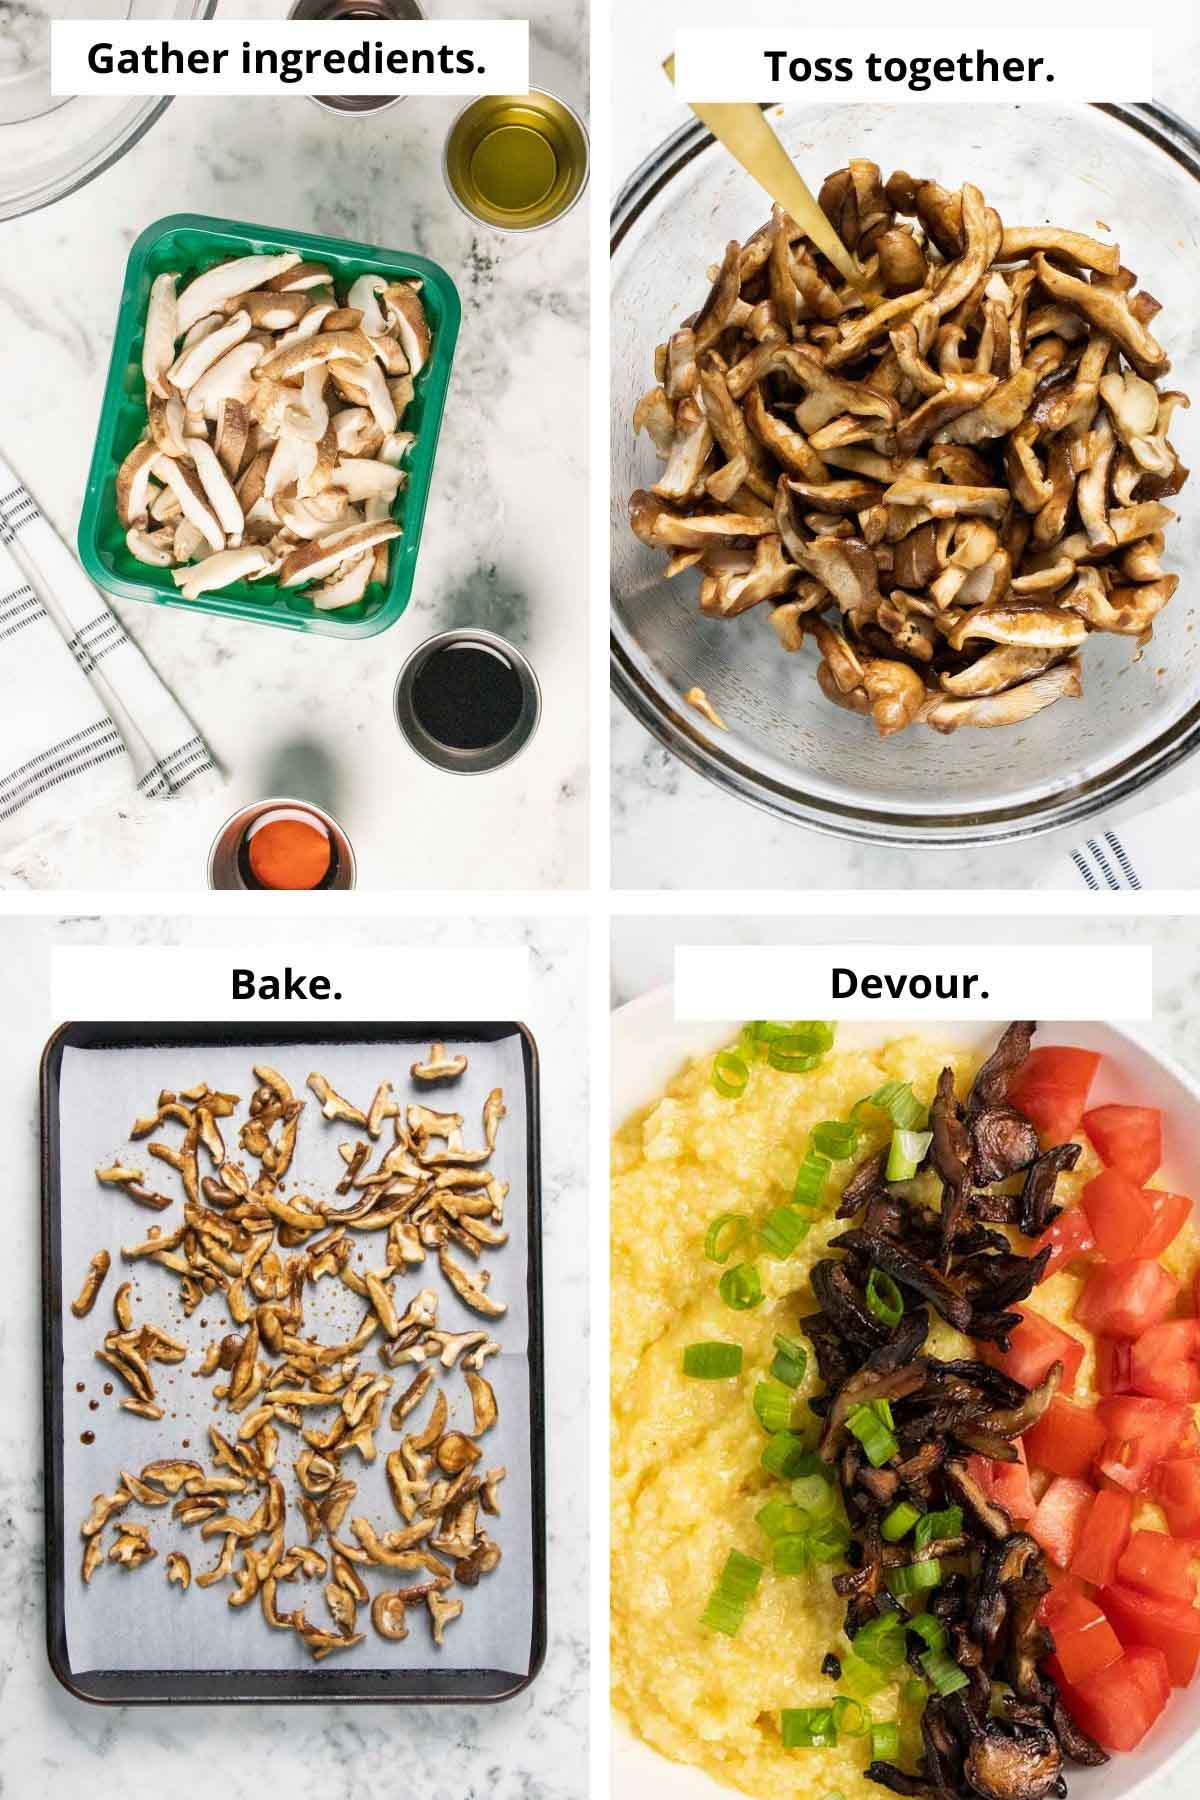 image collage of mushroom bacon ingredients, seasoned mushrooms in a bowl, spread out on a baking sheet, and cooked over grits